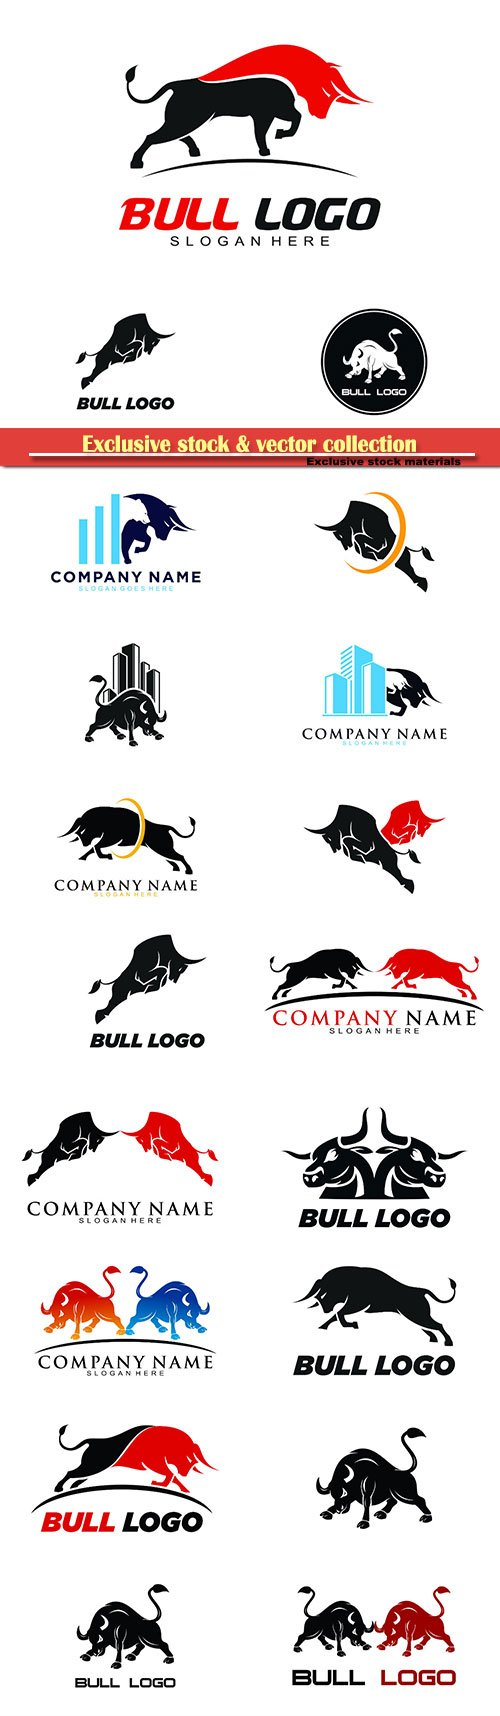 Bull logo vector icon illustration